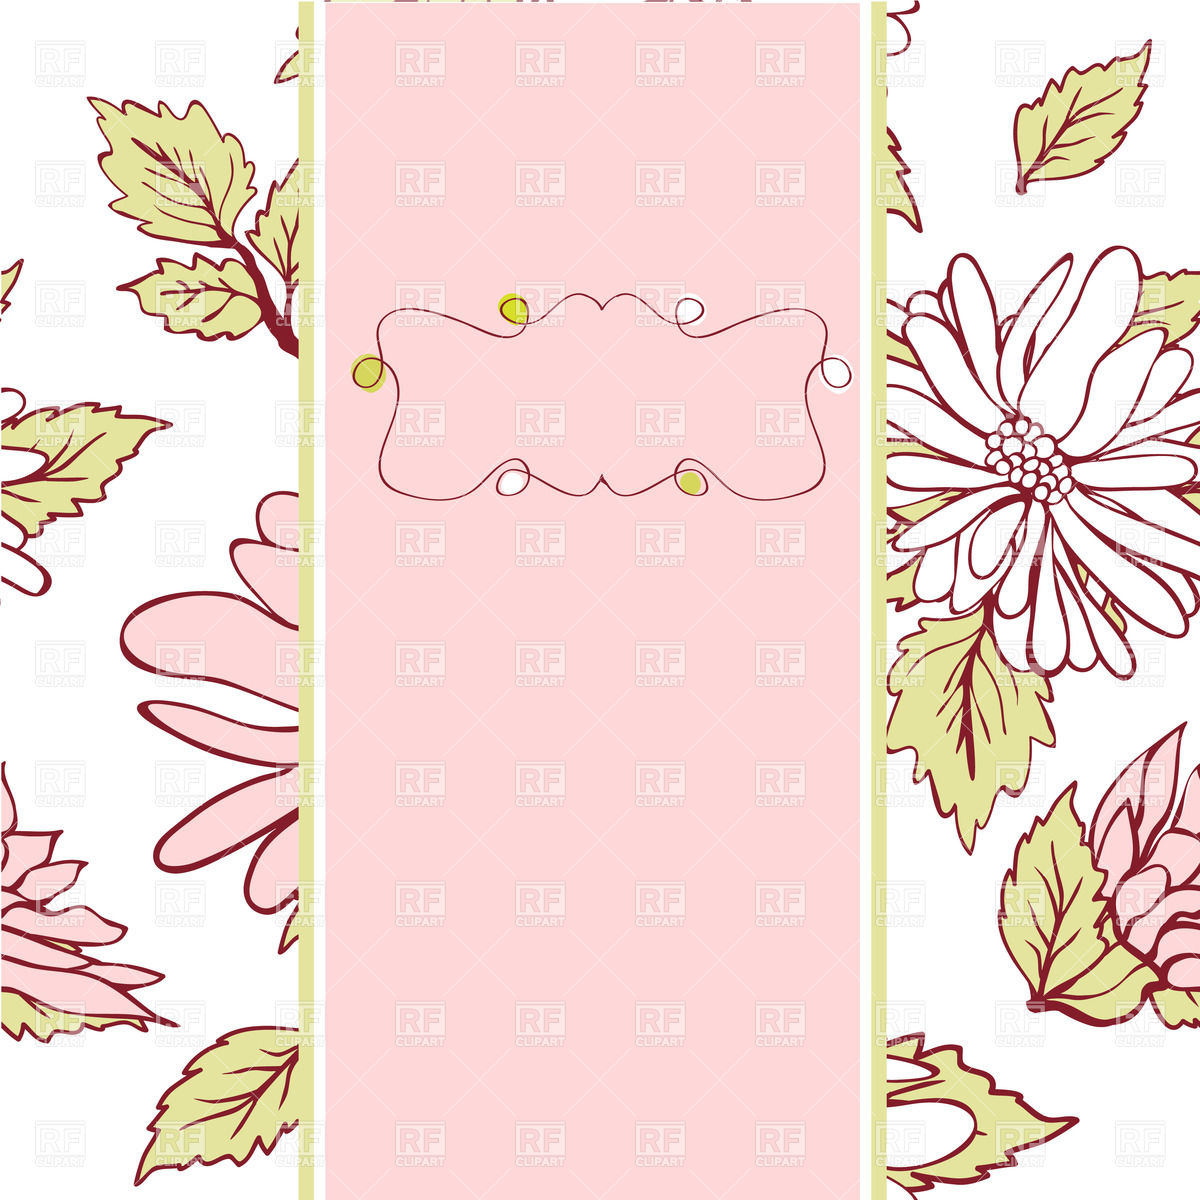 Clipart Catalog Borders And Frames Vintage Pink Vector Frame On Floral